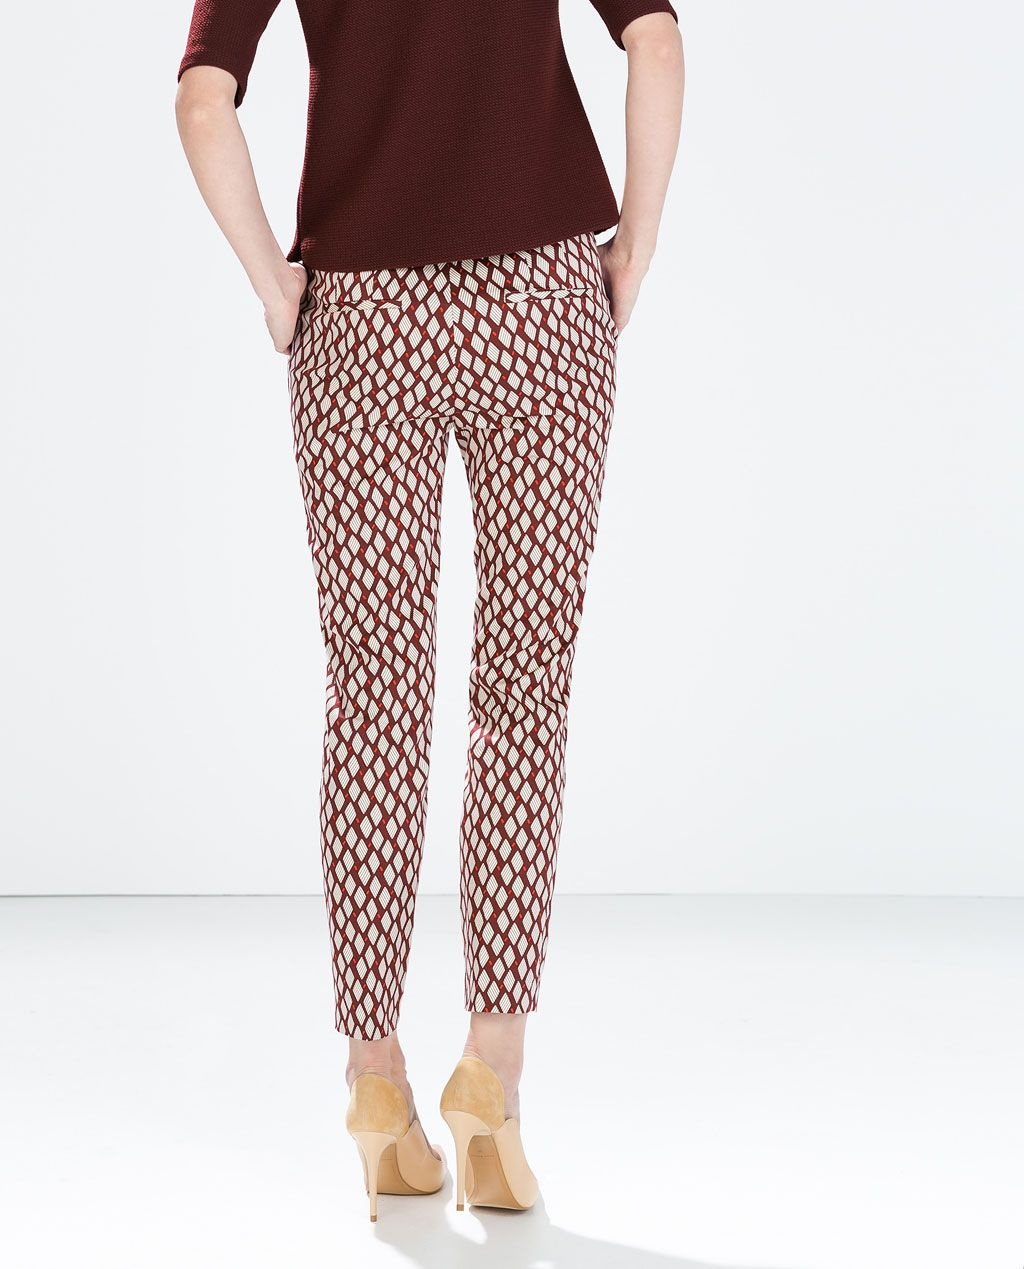 204510b1 GEOMETRIC PRINT TROUSERS from Zara in my wardrobe :) | Have it ...